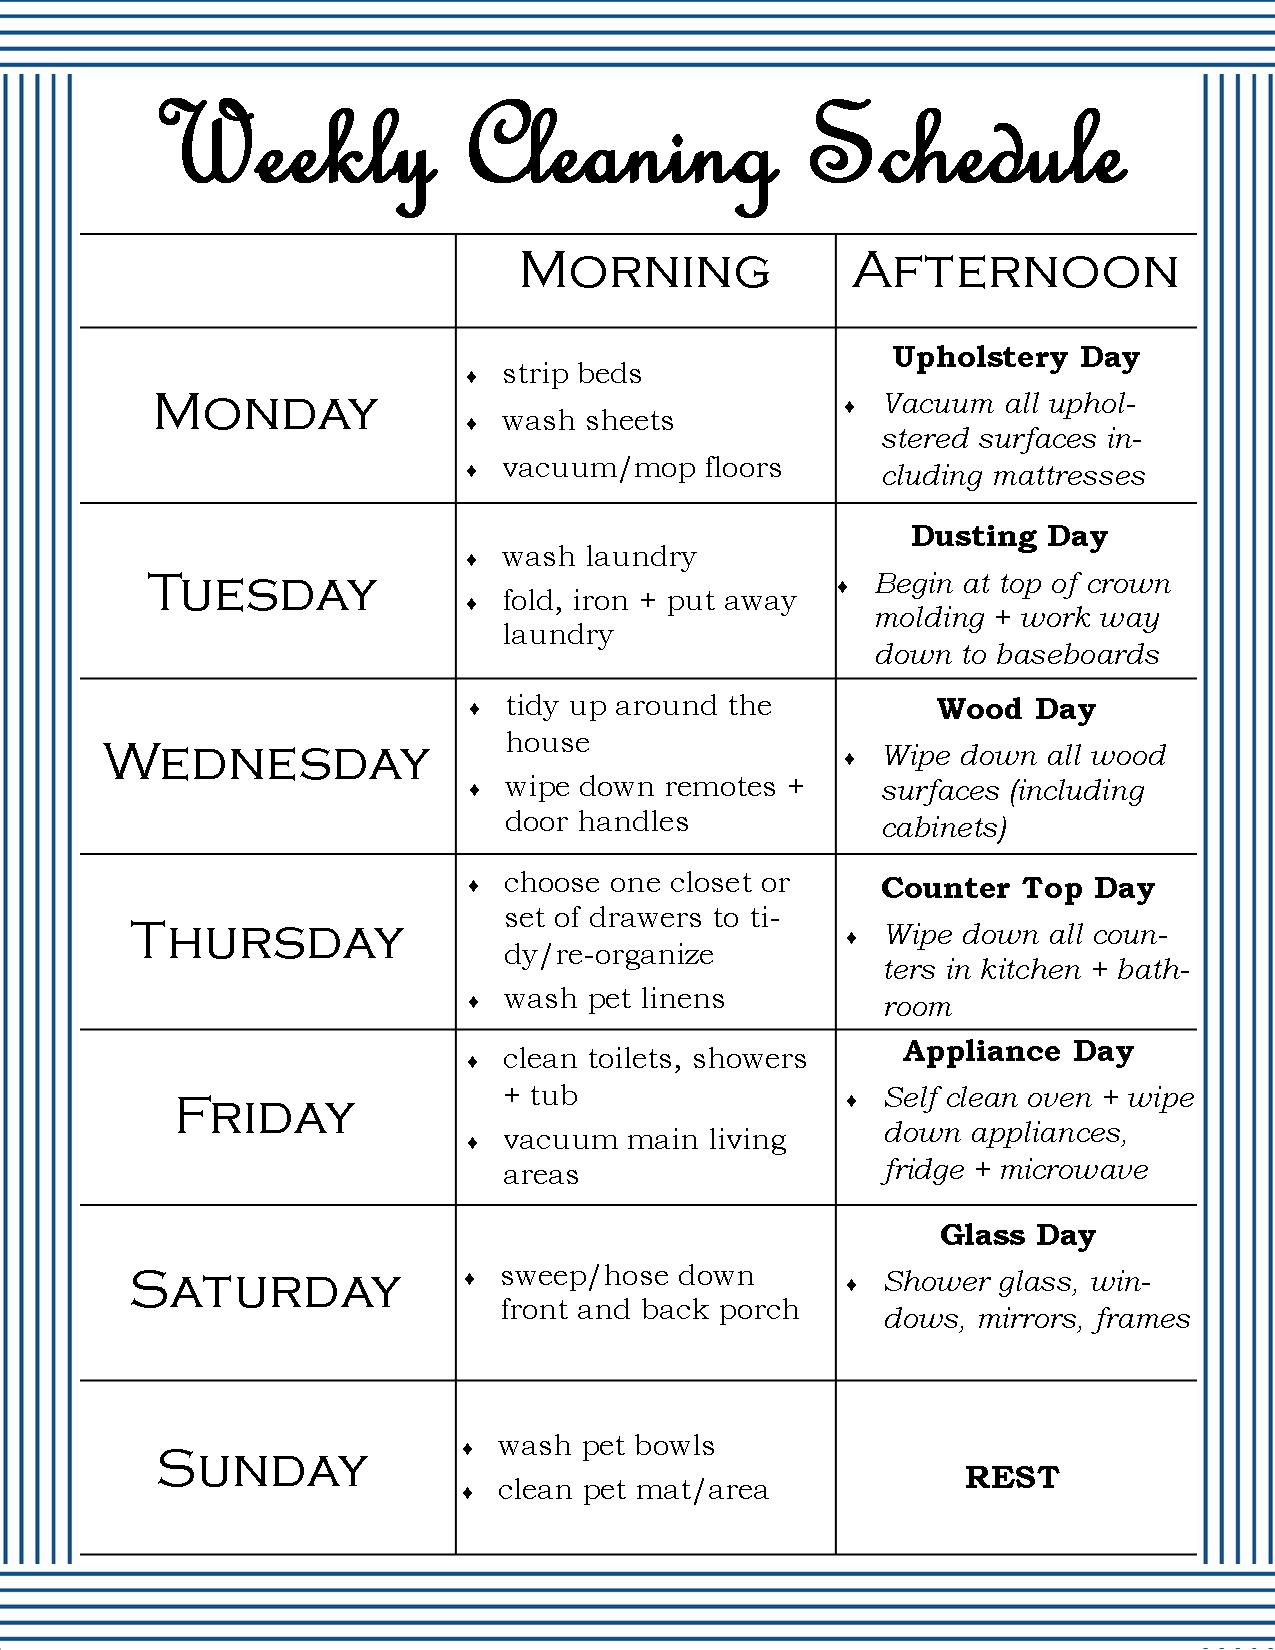 The Weekly Cleaning Schedule – Cleaning Schedule